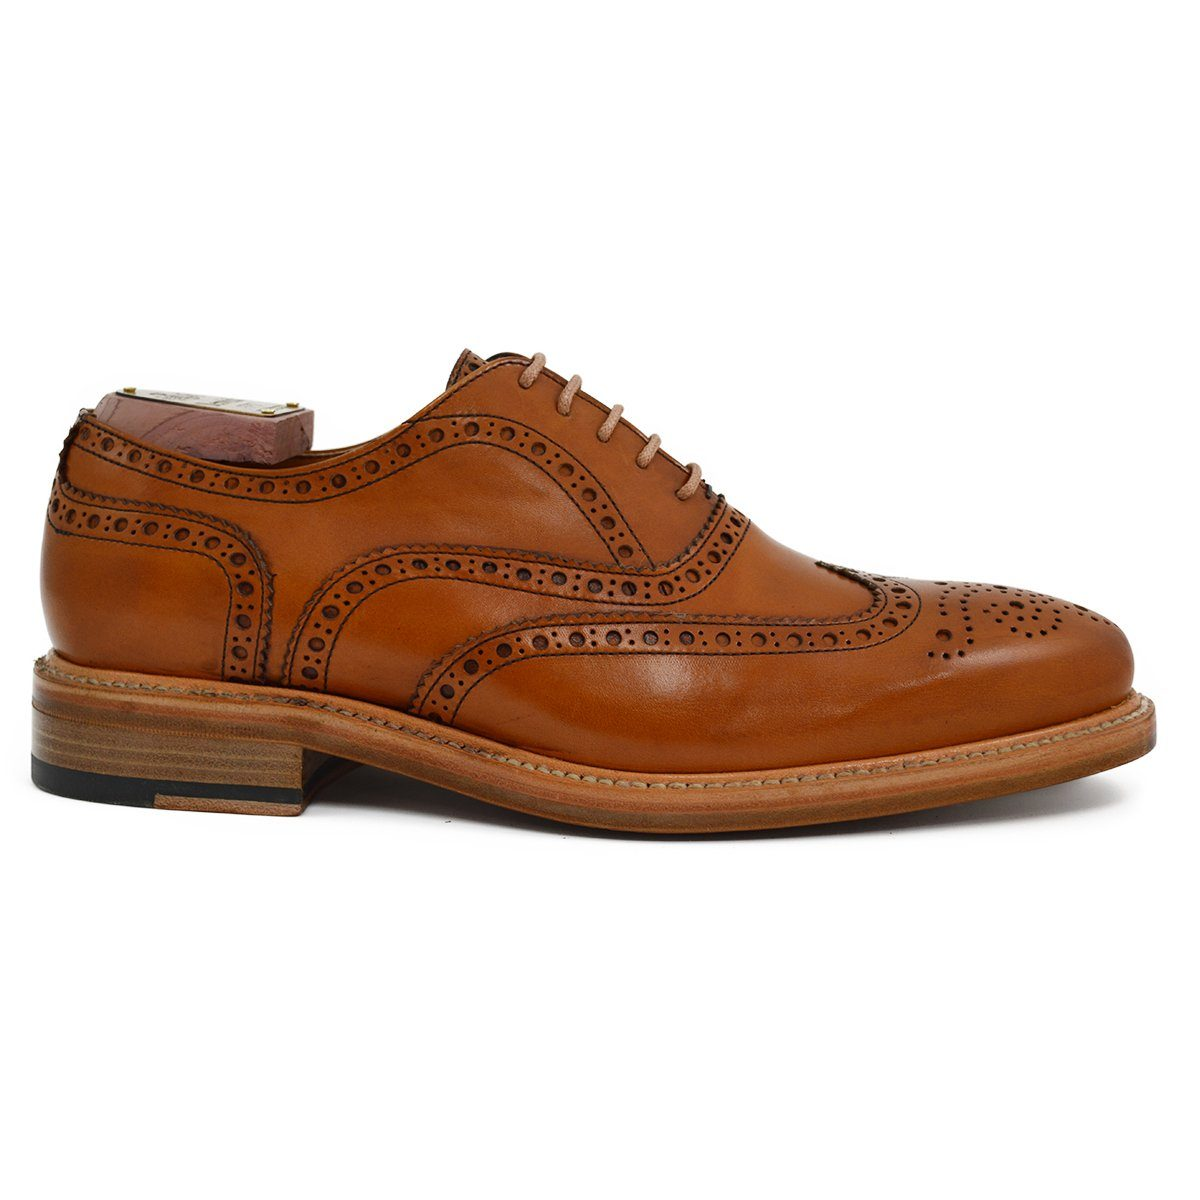 Berwick 1707 Brogue (2817) - Tan Calf - A Fine Pair of Shoes - English  Handmade Shoes and Brogues Online 9ef15421a1